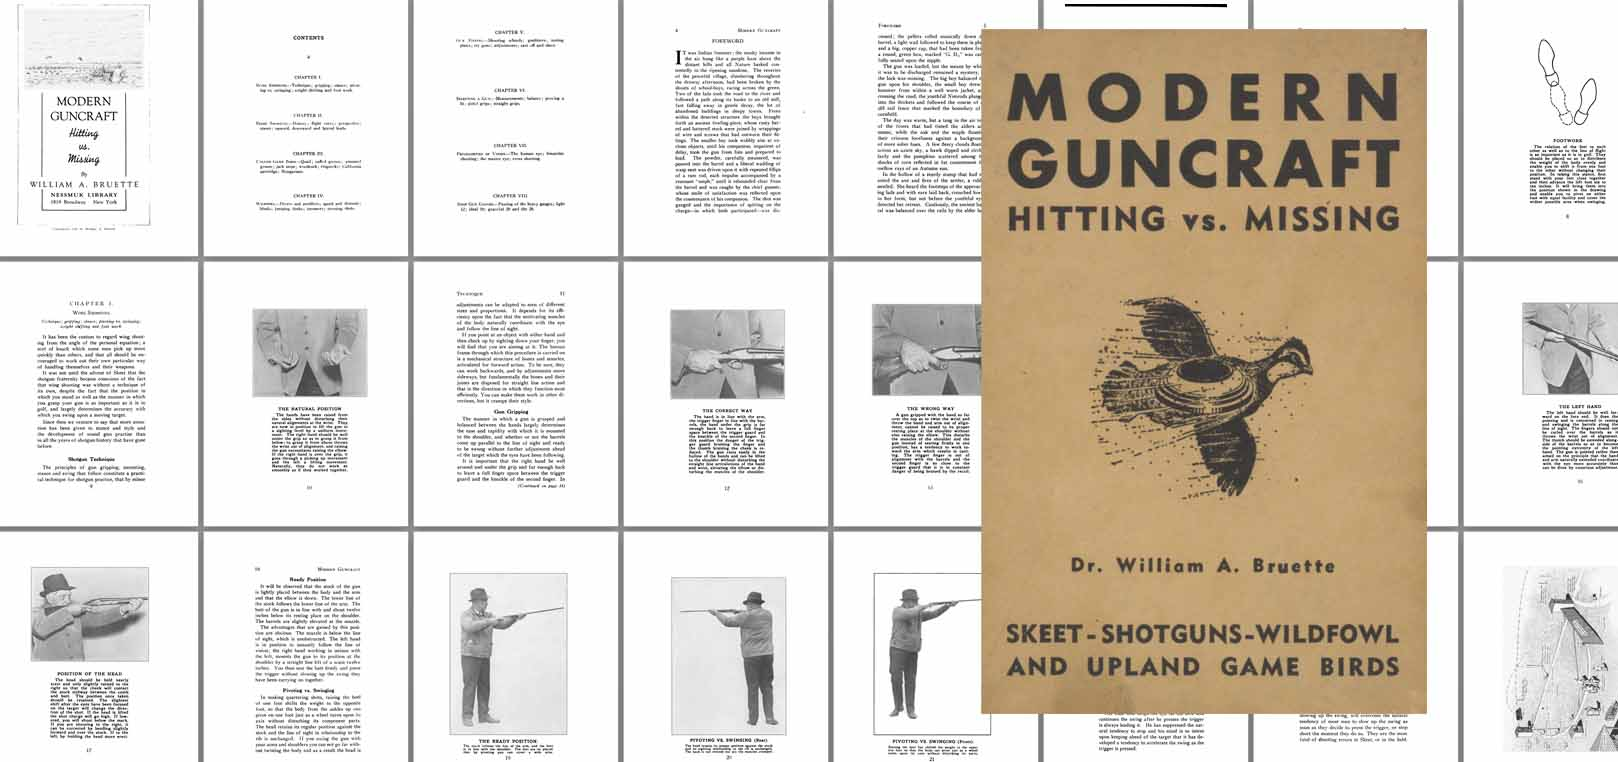 Modern Guncraft - Hitting vs. Missing